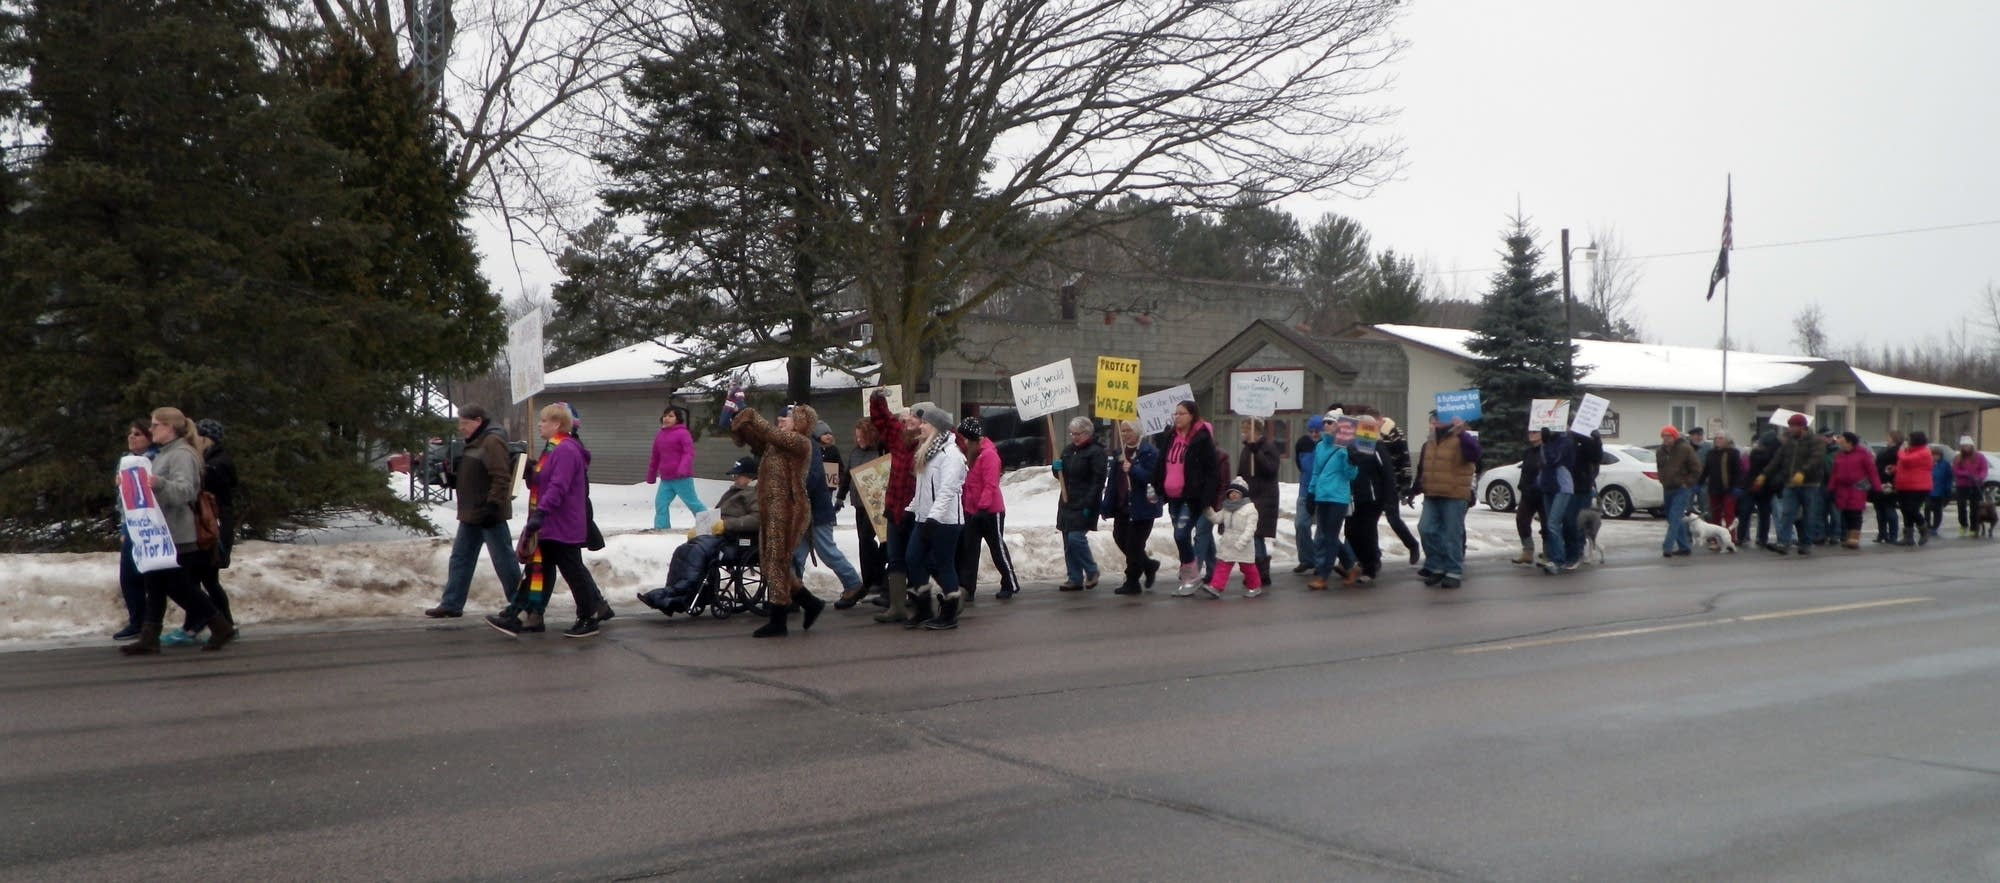 Demonstrators march in Longville